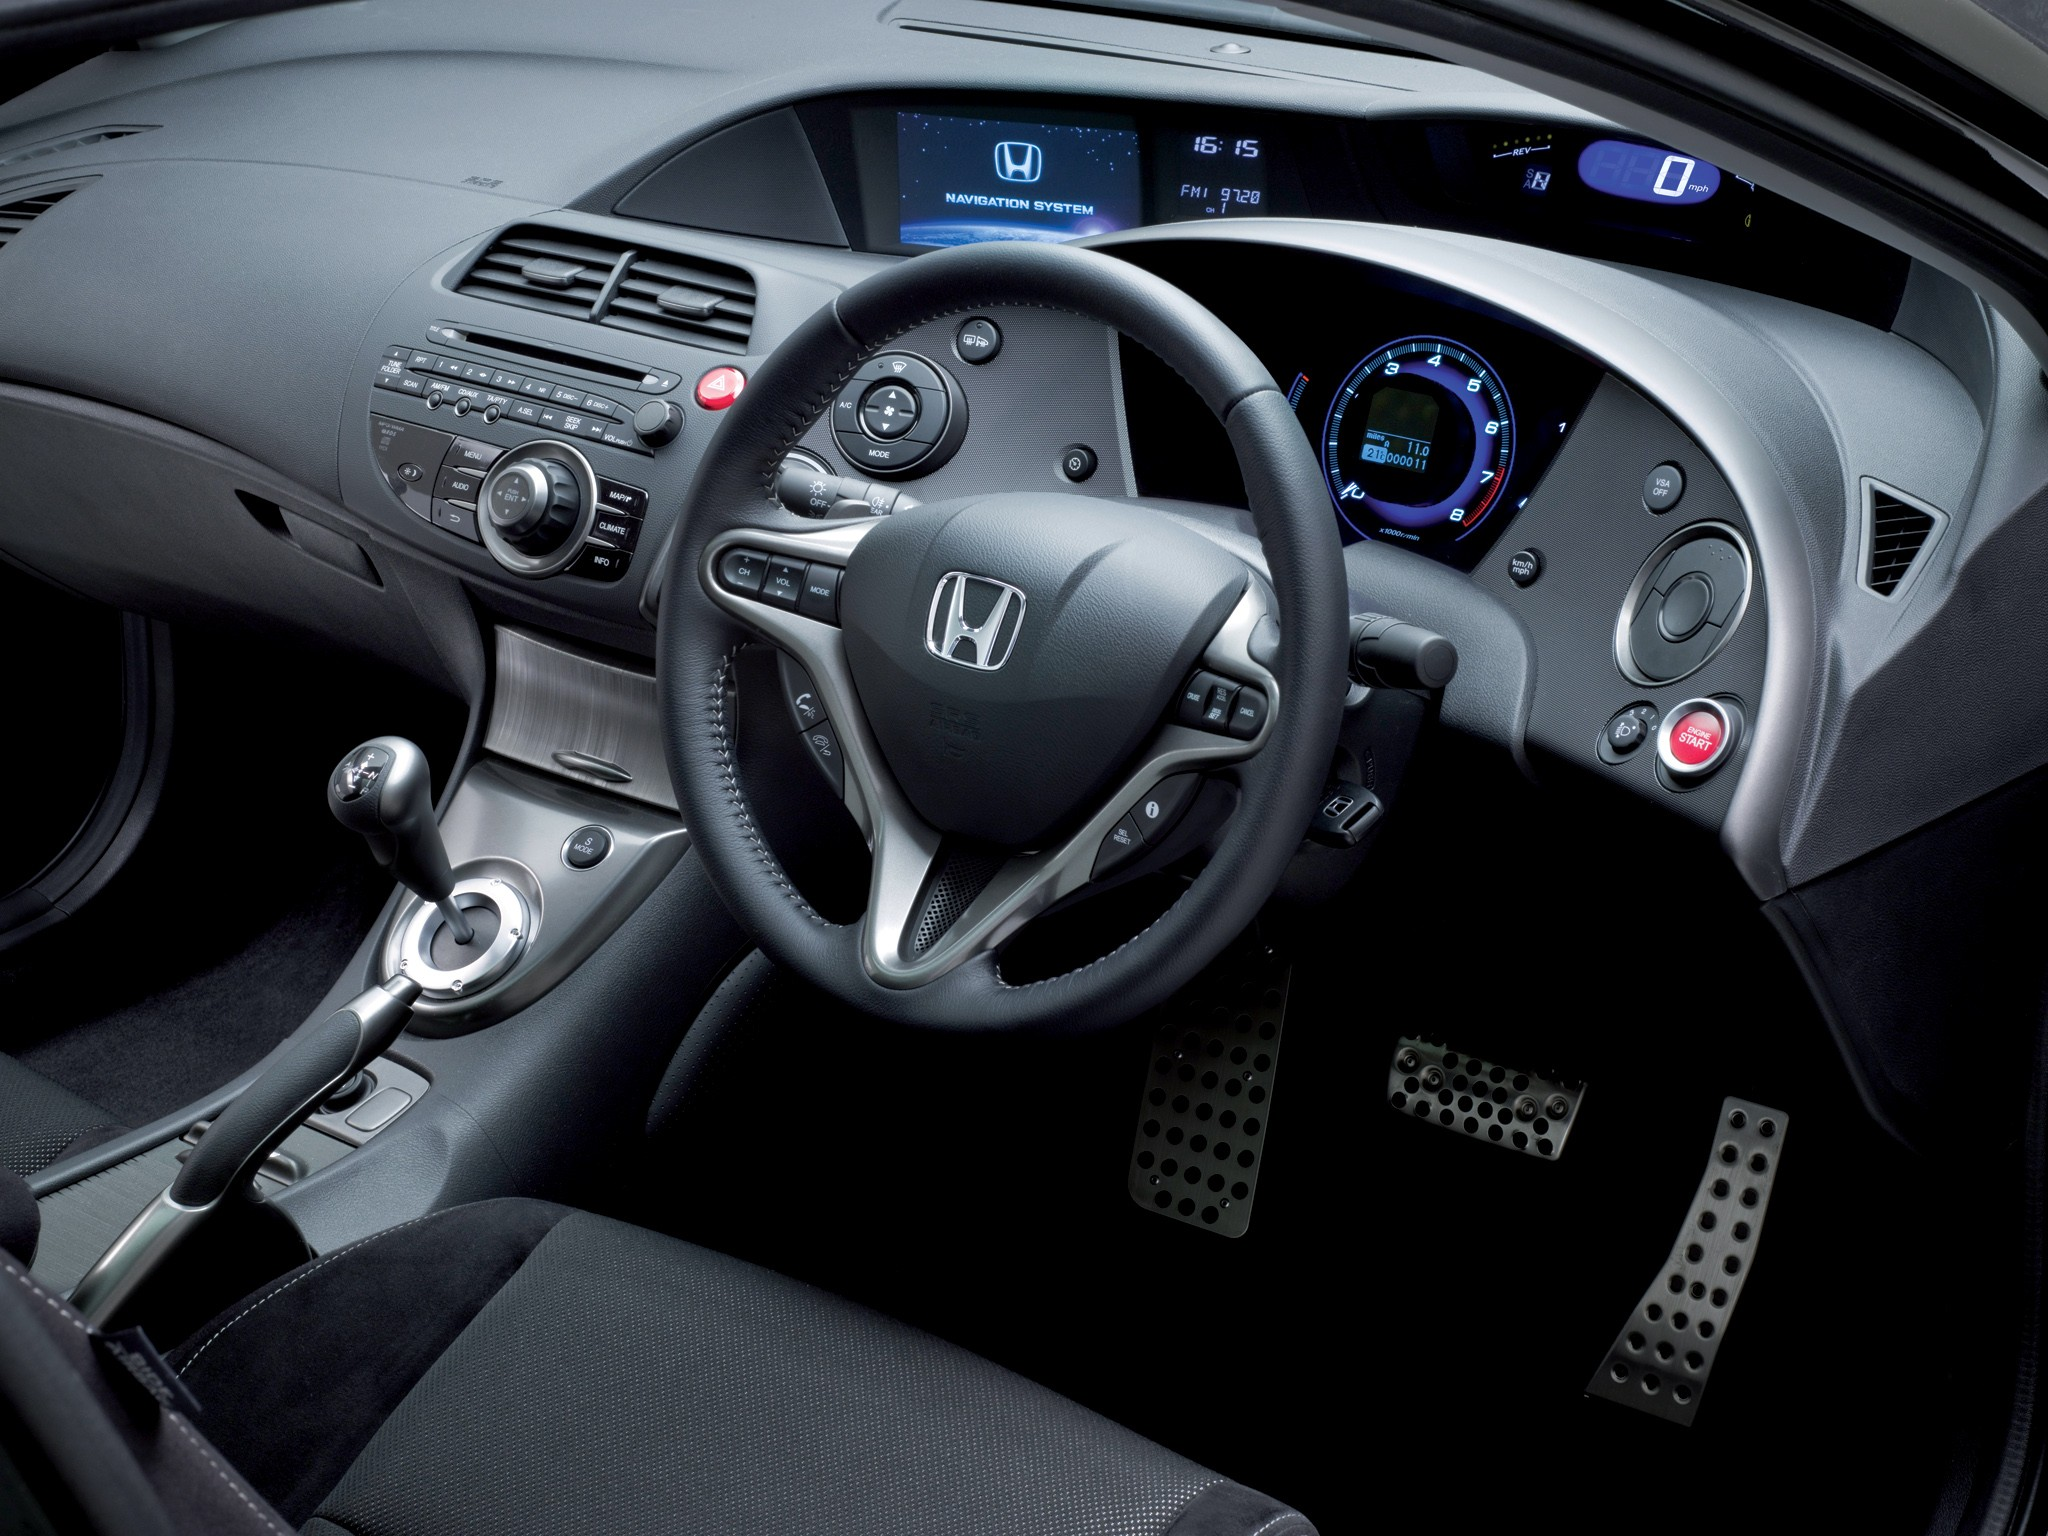 http://carsot.com/images/honda-civic-viii-restyling-2008-2012-coupe-interior-1.jpg